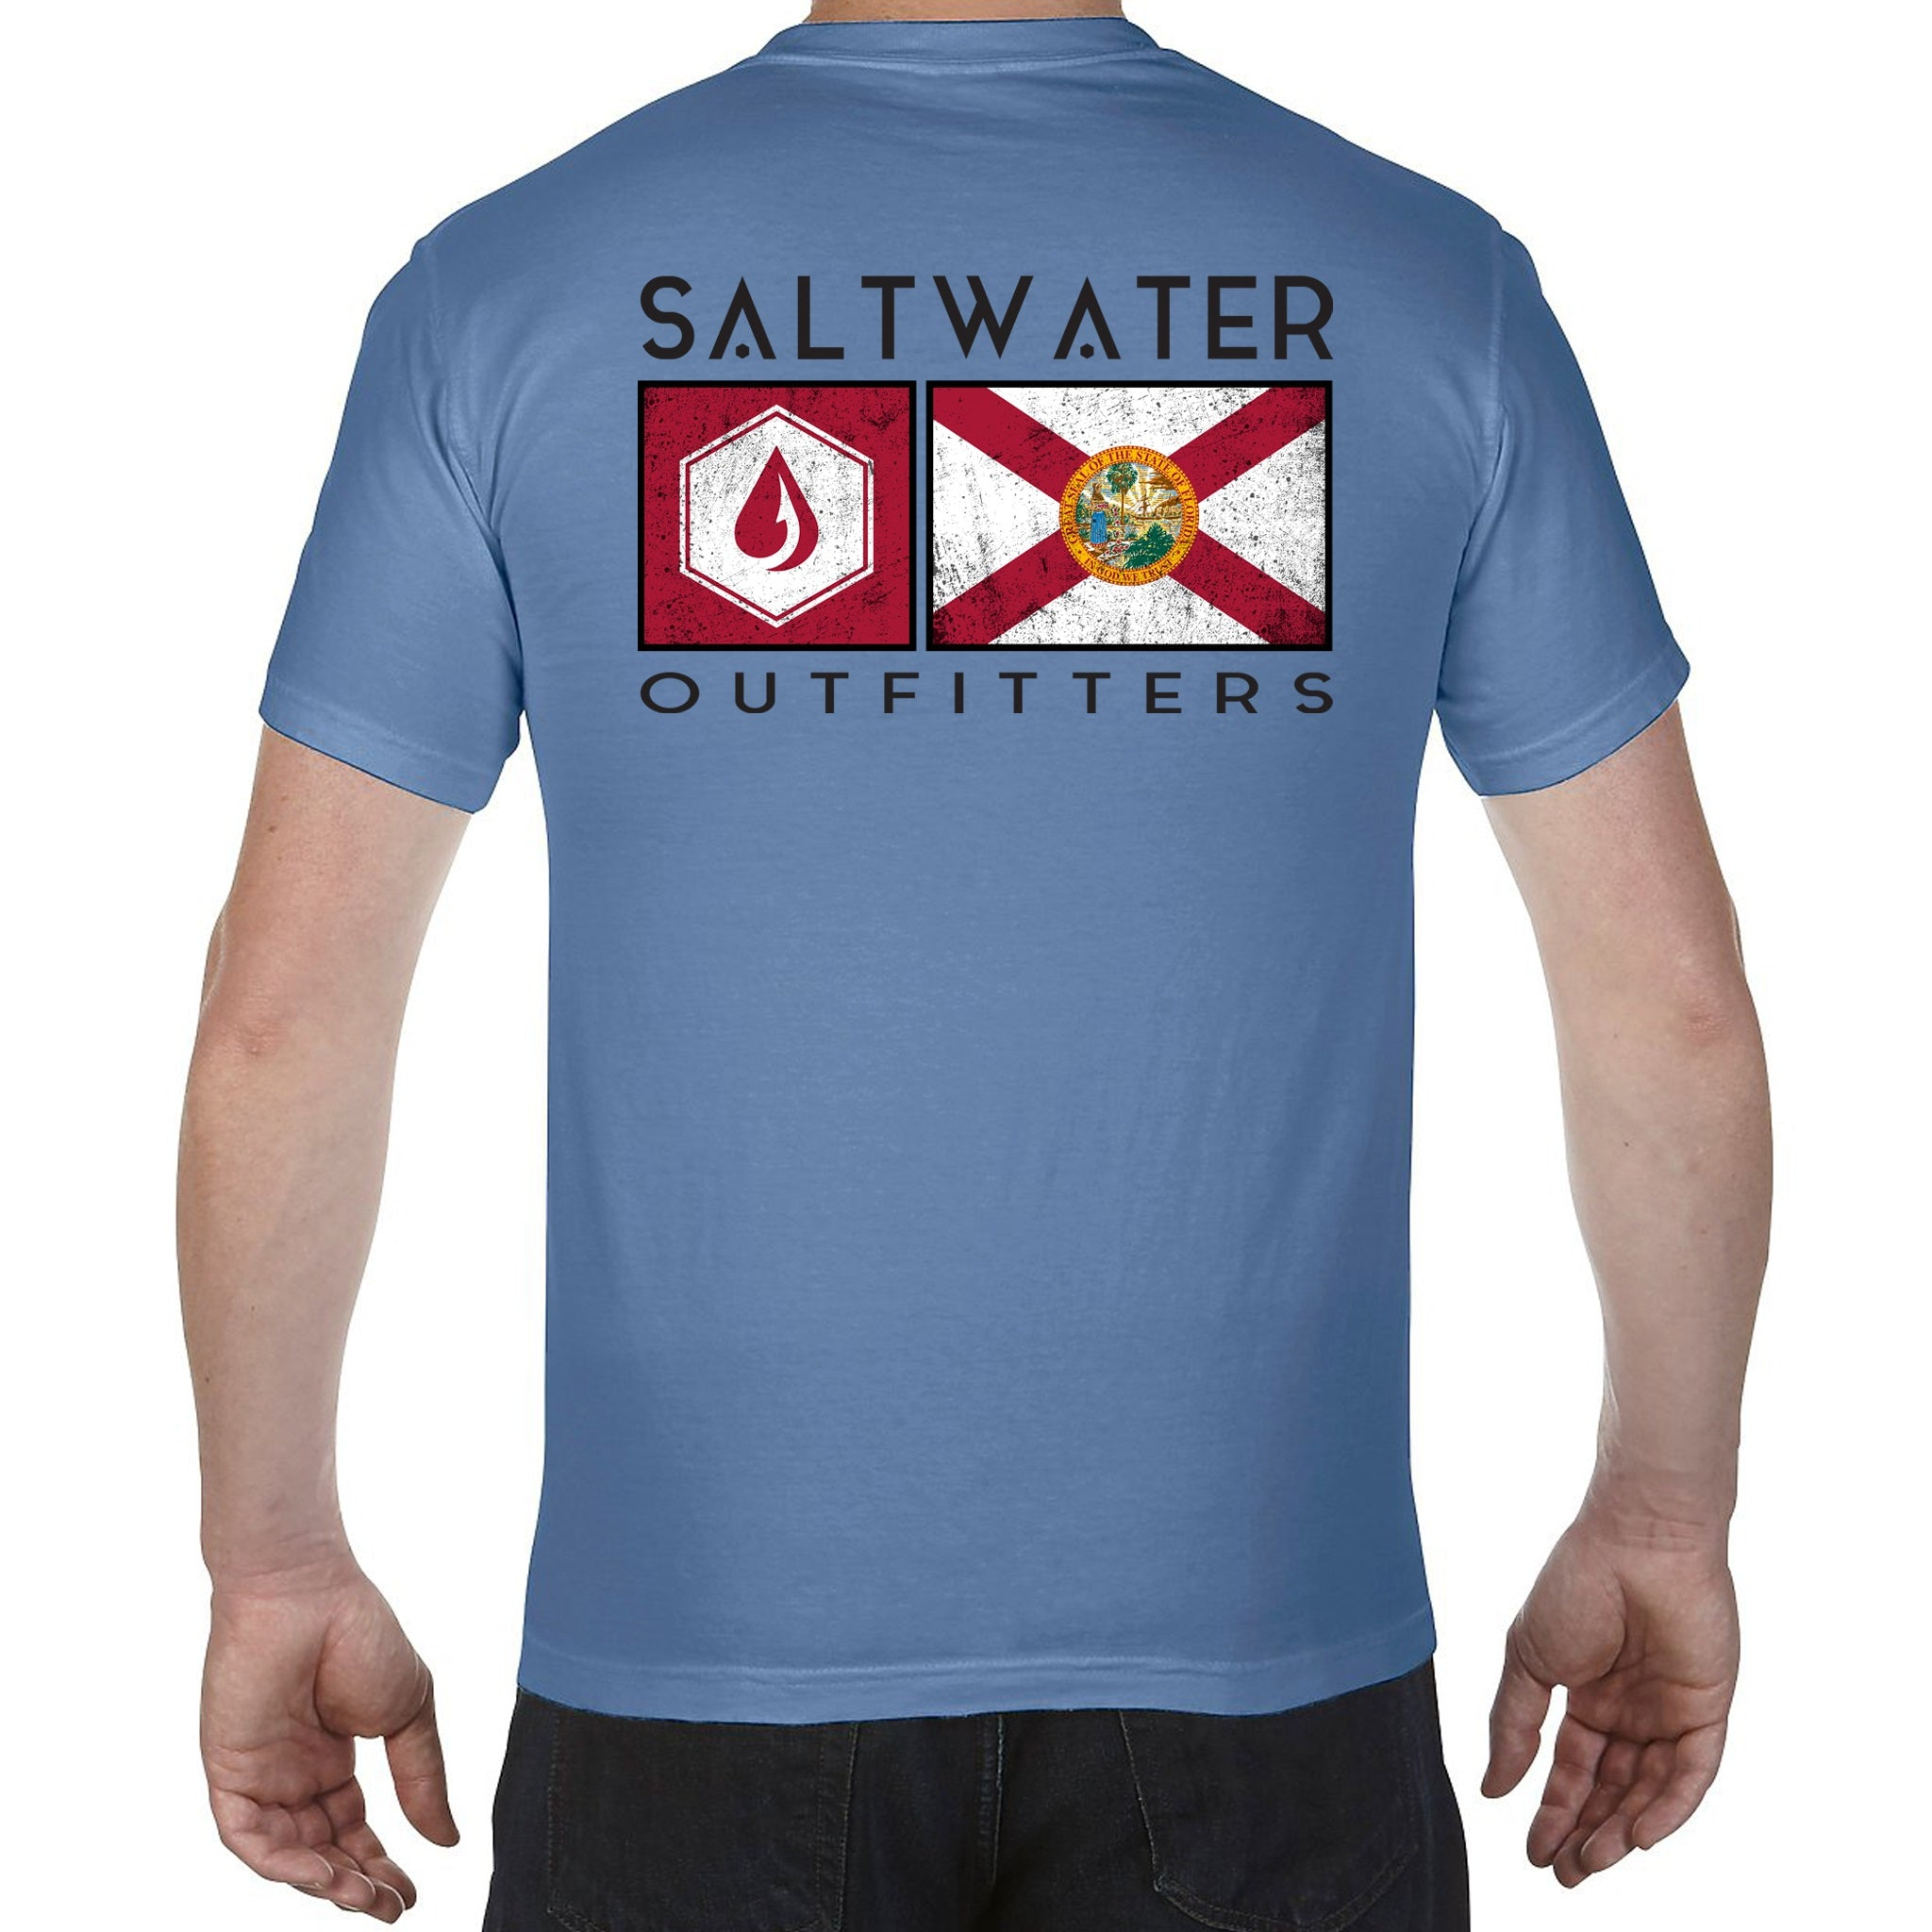 SALTWATER OUTFITTERS STATE FLAG S/S TEE